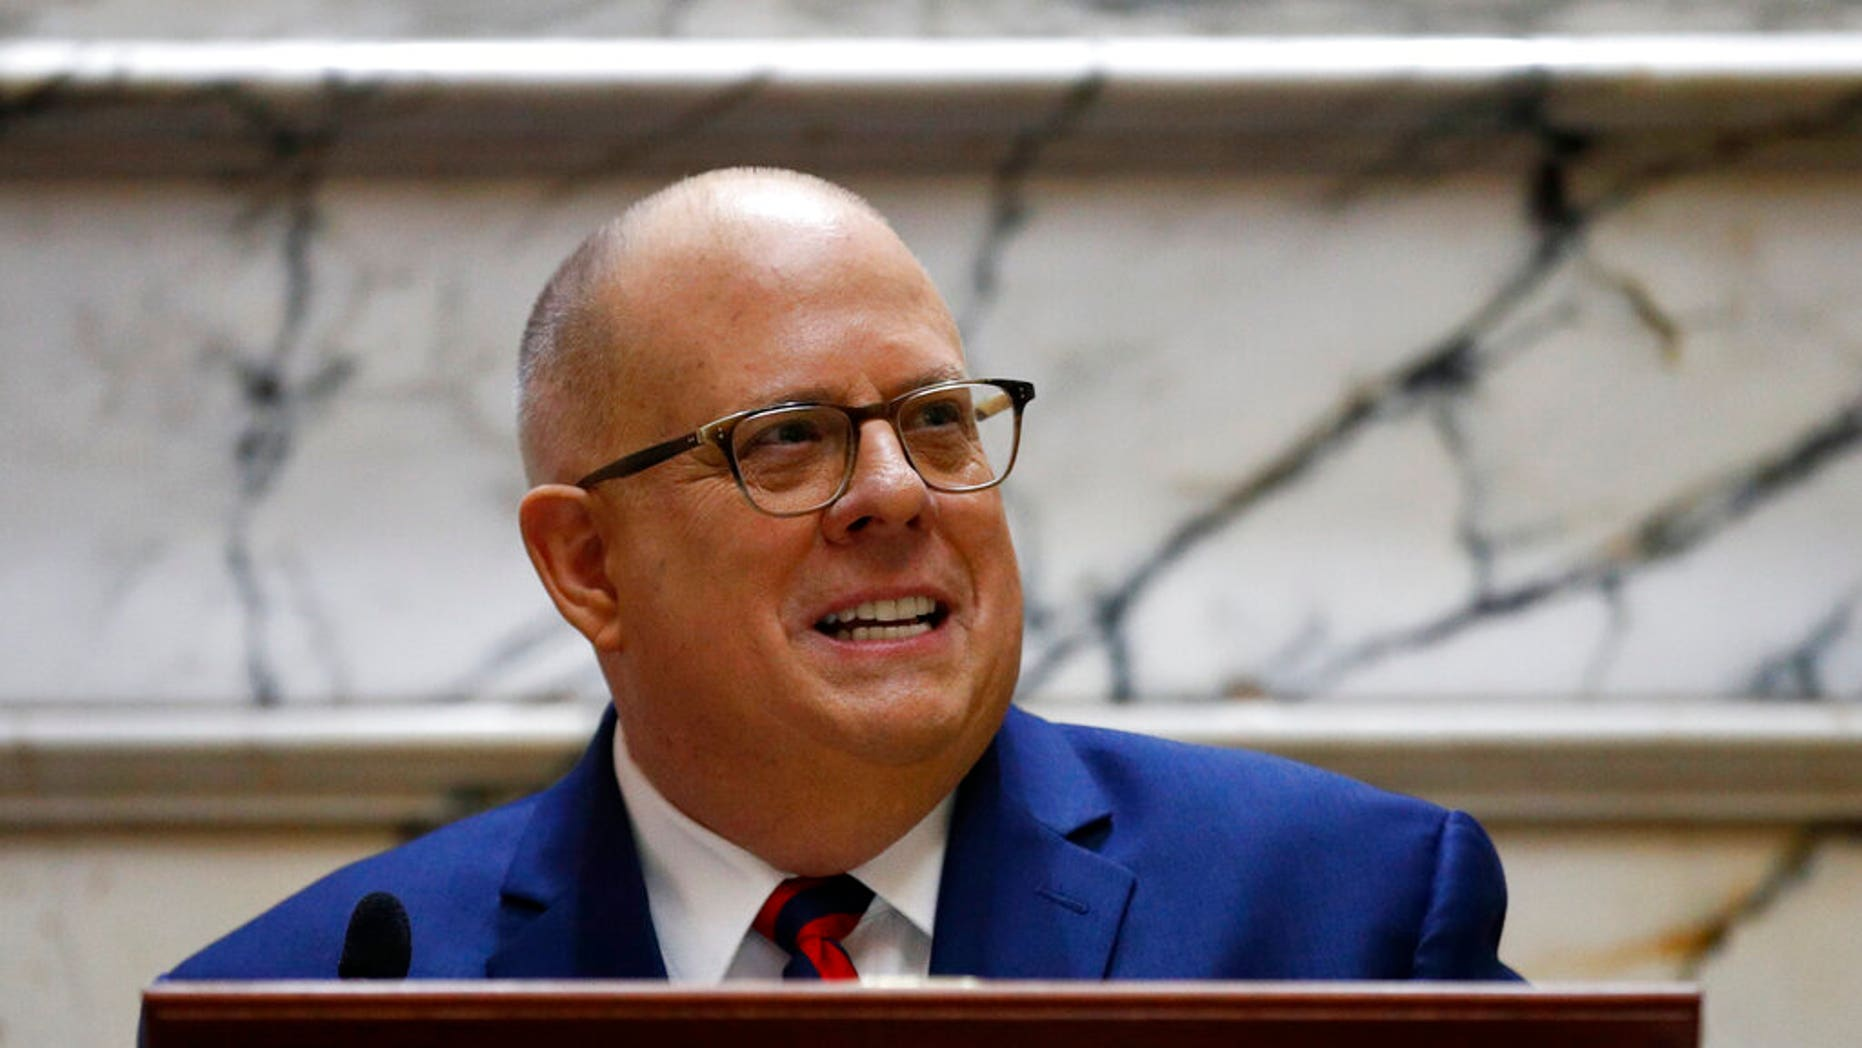 Maryland Gov. Larry Hogan, seen here in January 2019, is headed to New Hampshire for a major speech in April. (AP Photo/Patrick Semansky, File)